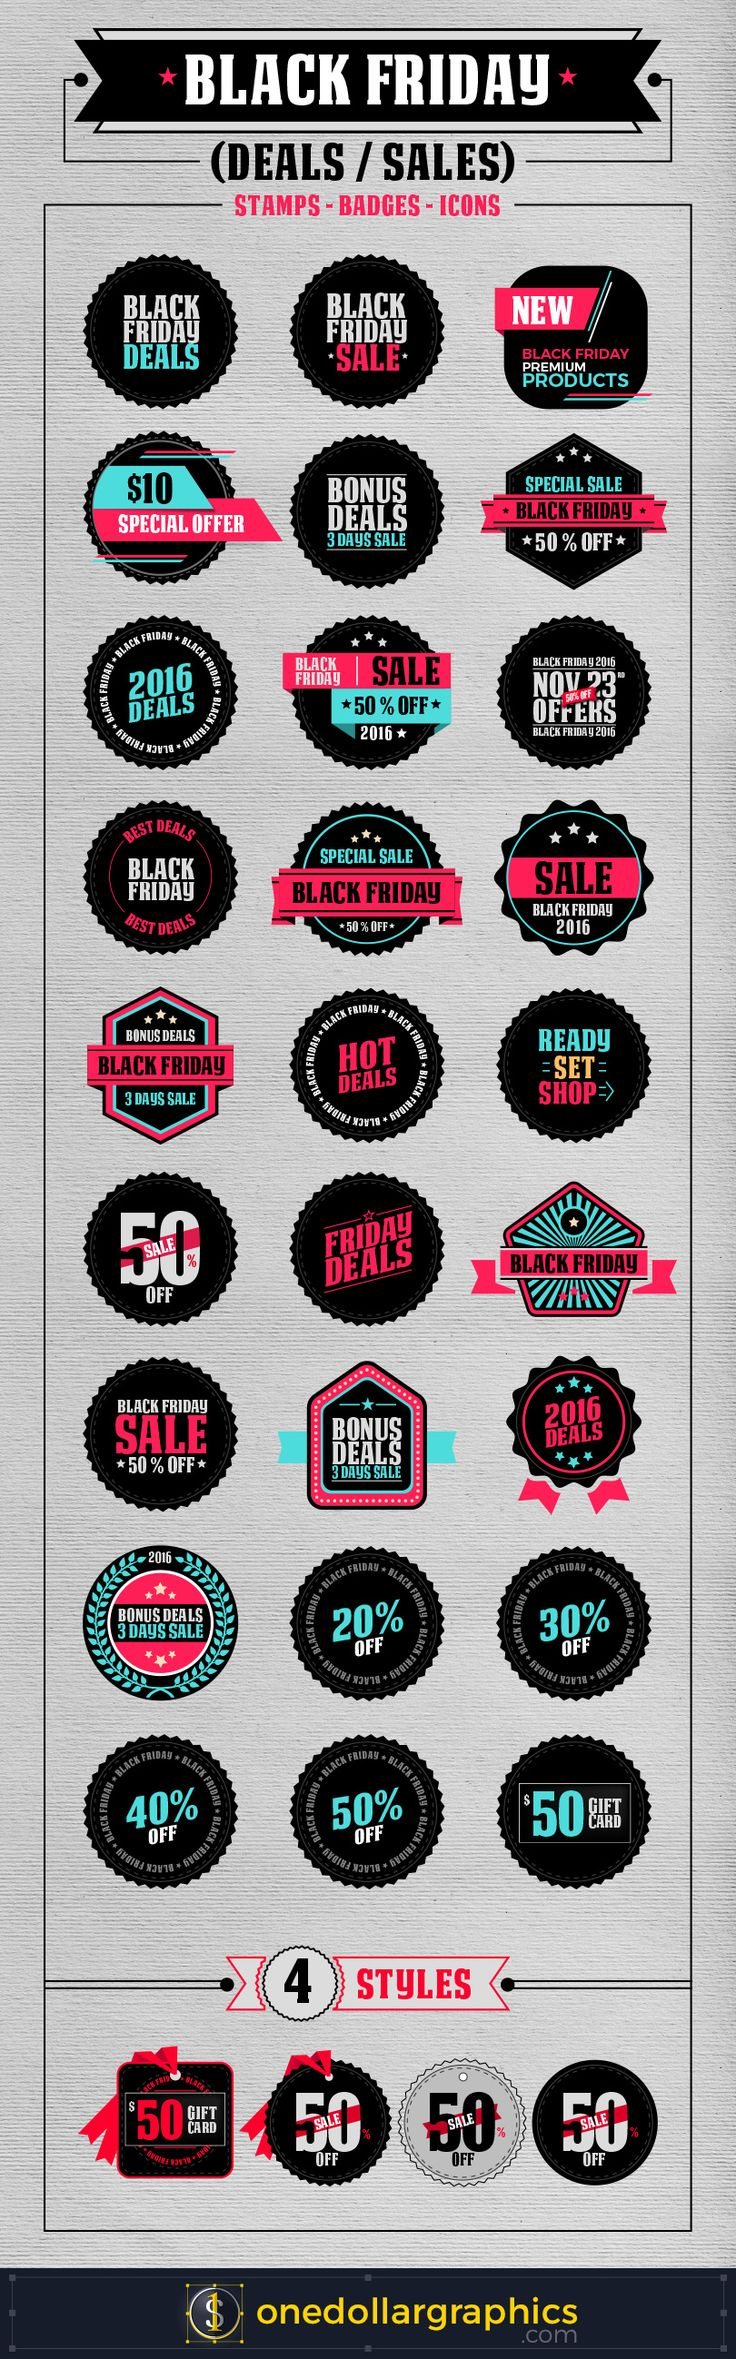 Black Friday Deals / Sales | Stamps, Badges, Icons In Vector Format